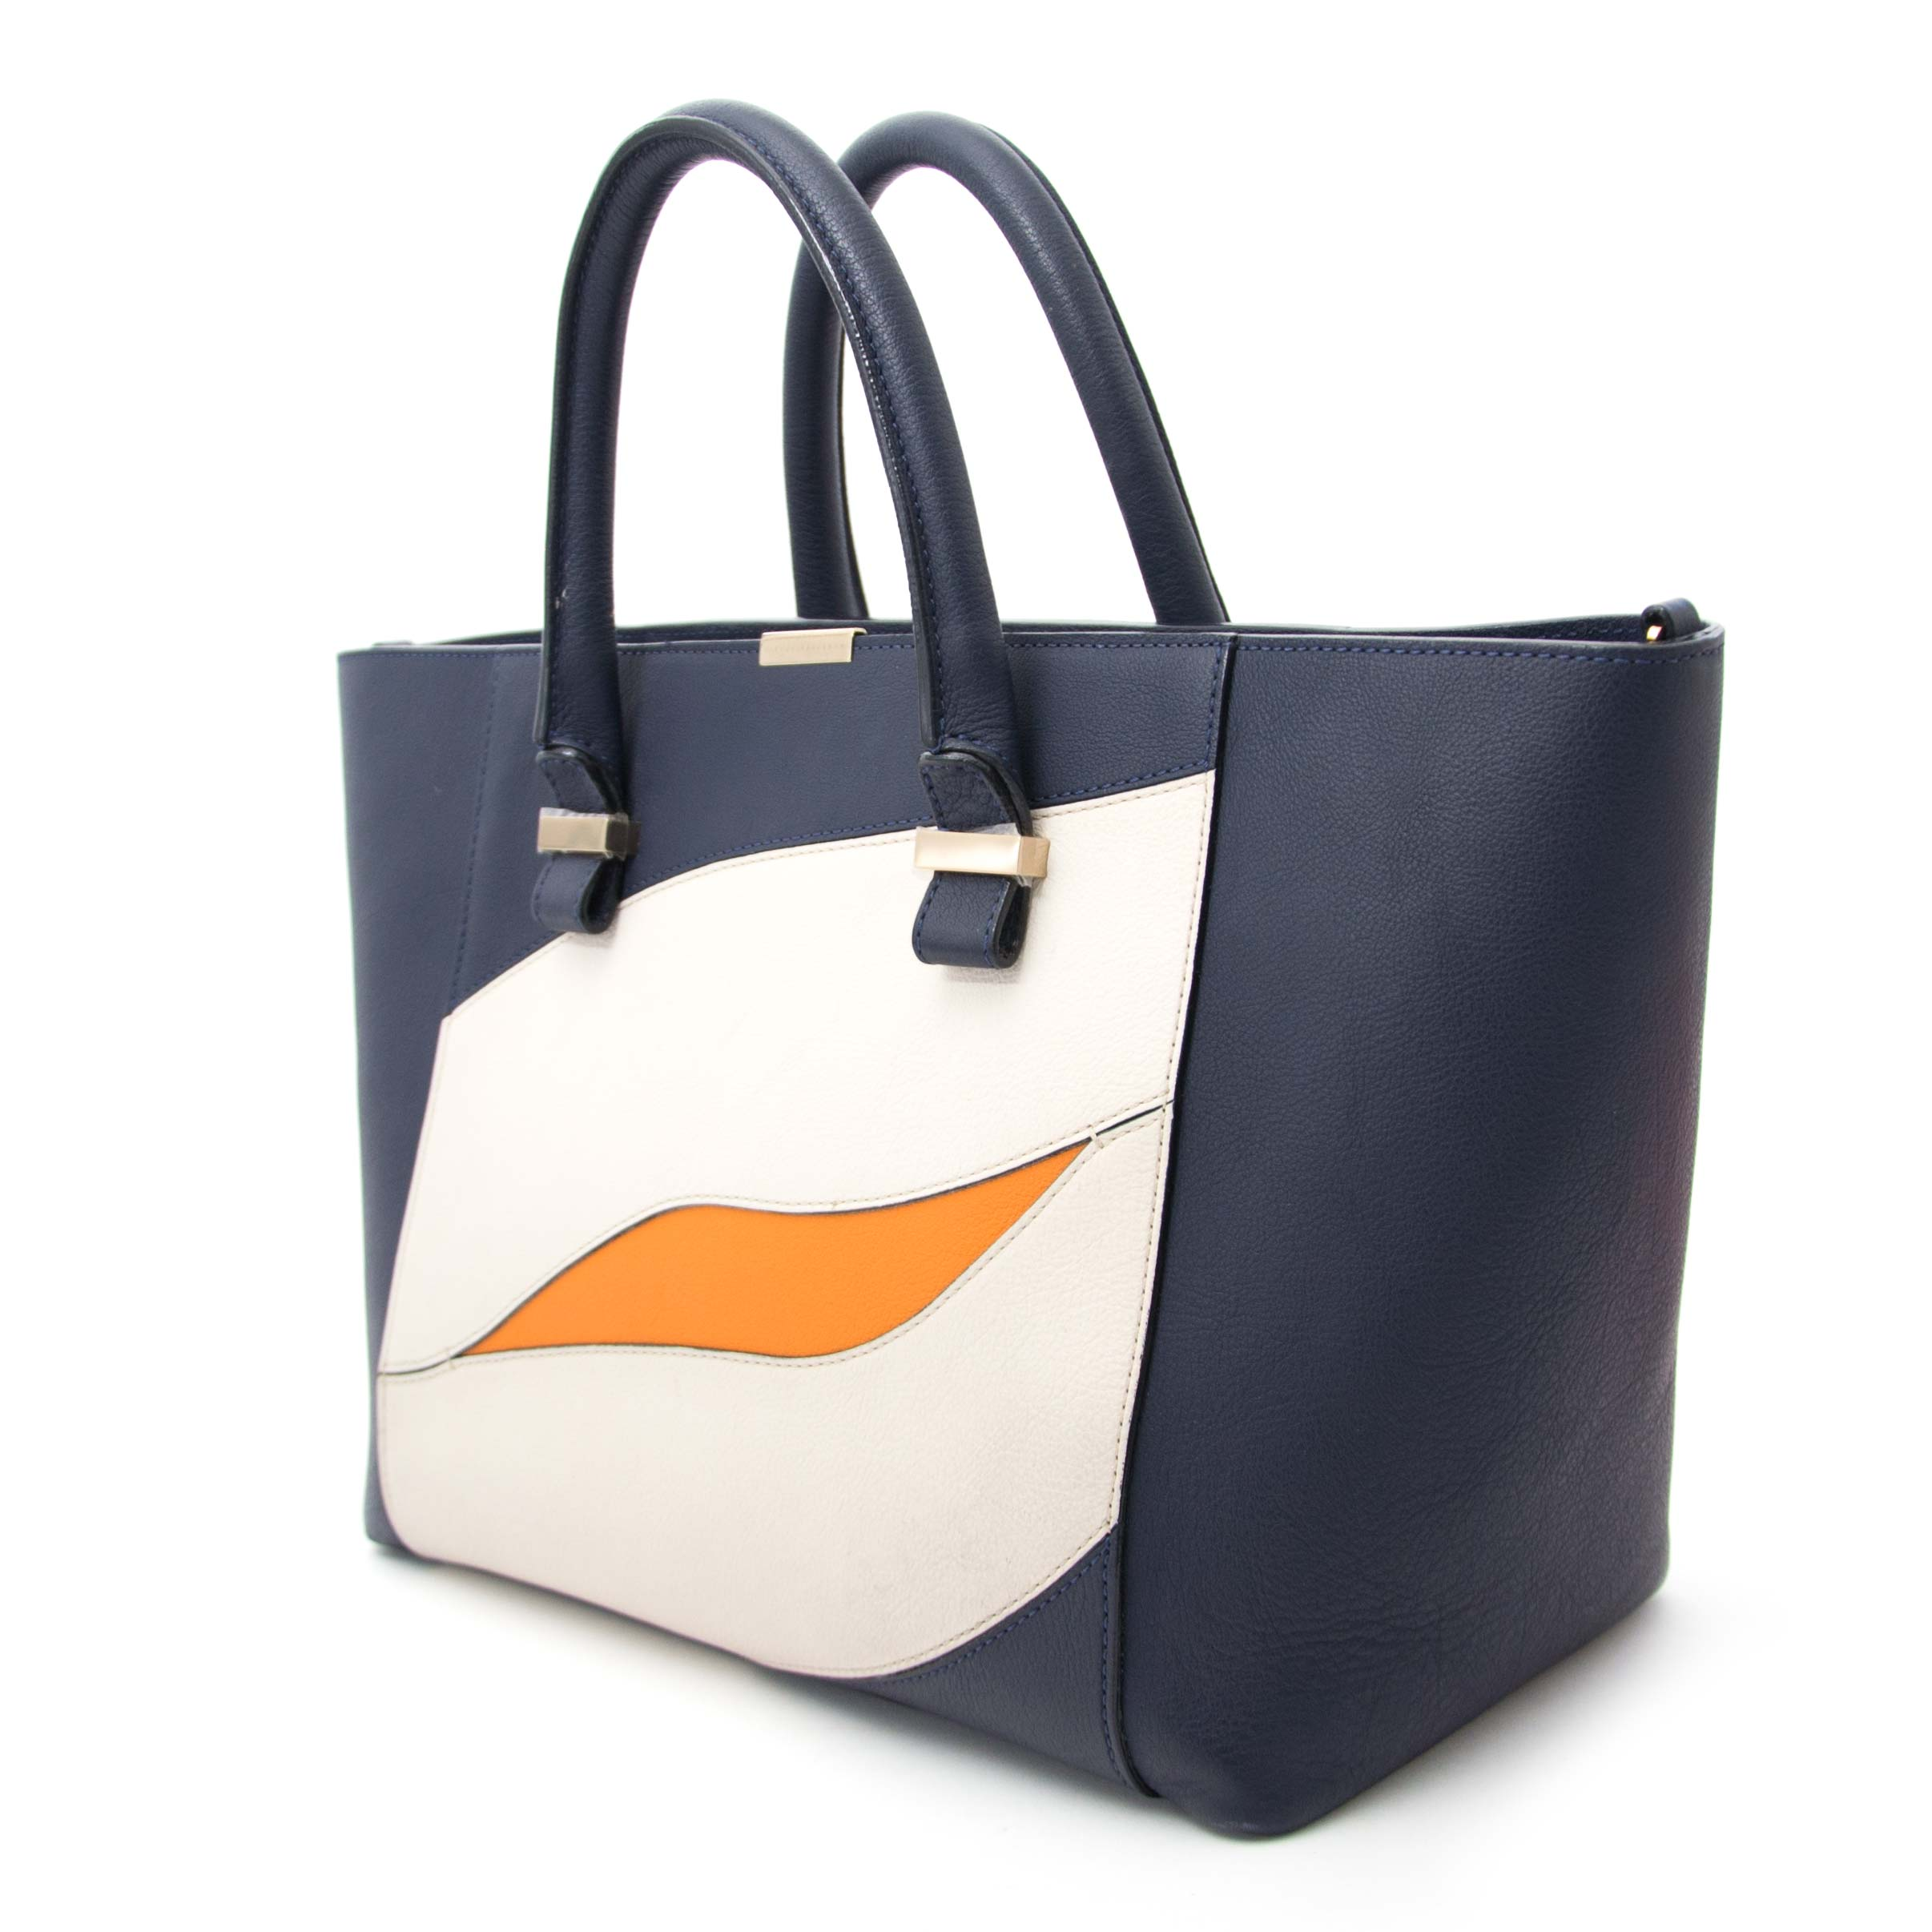 buy safe and online secondhand Victoria Beckham tote bag